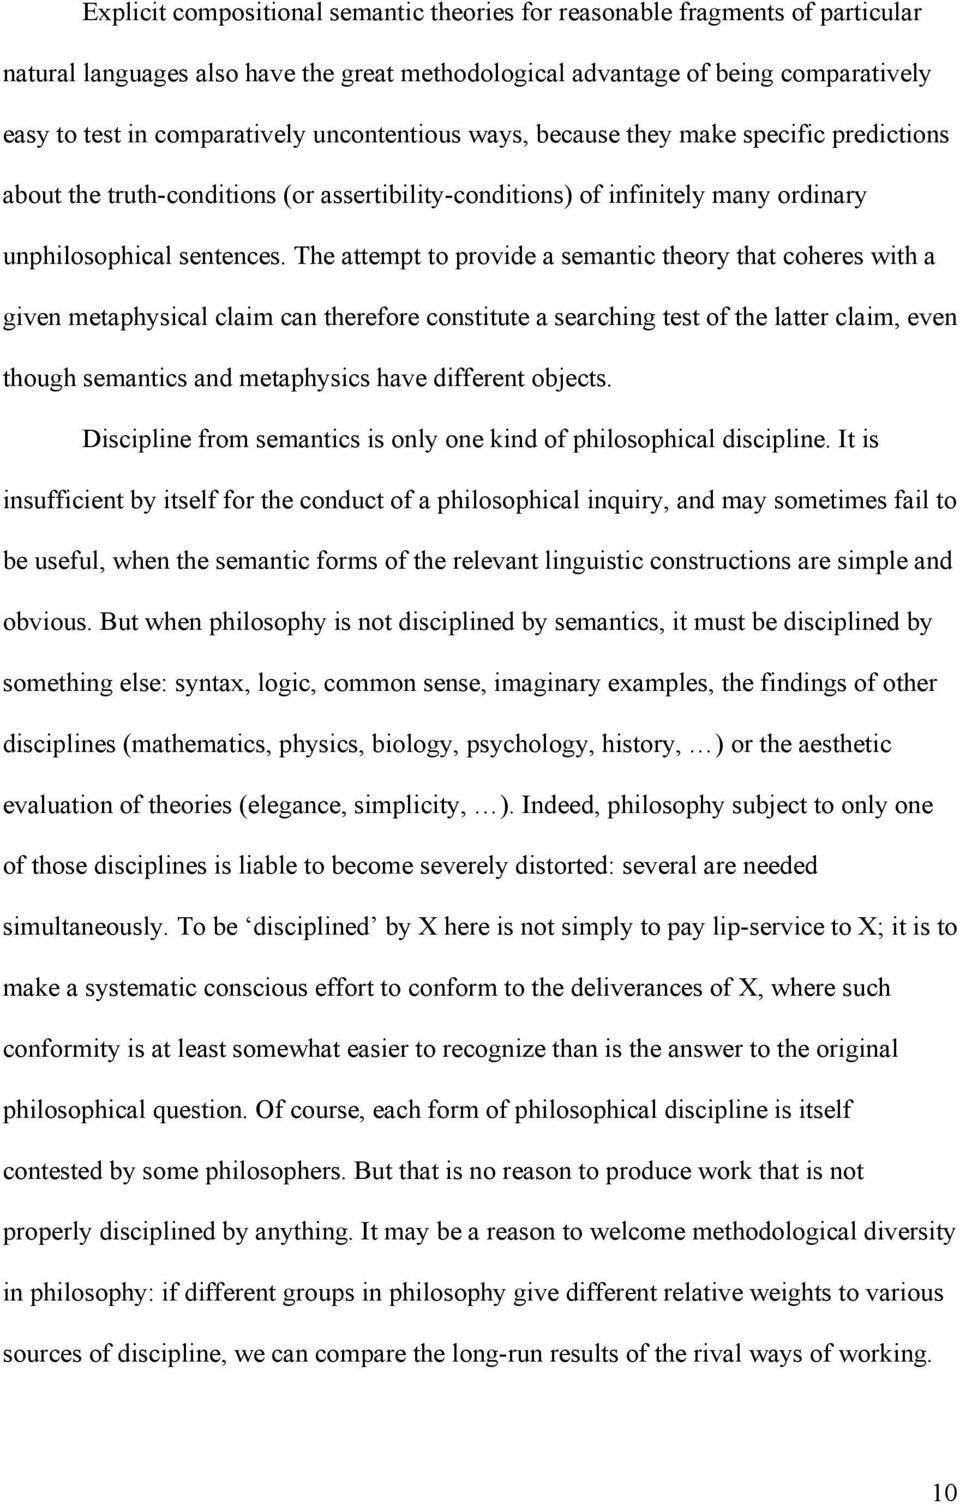 The attempt to provide a semantic theory that coheres with a given metaphysical claim can therefore constitute a searching test of the latter claim, even though semantics and metaphysics have